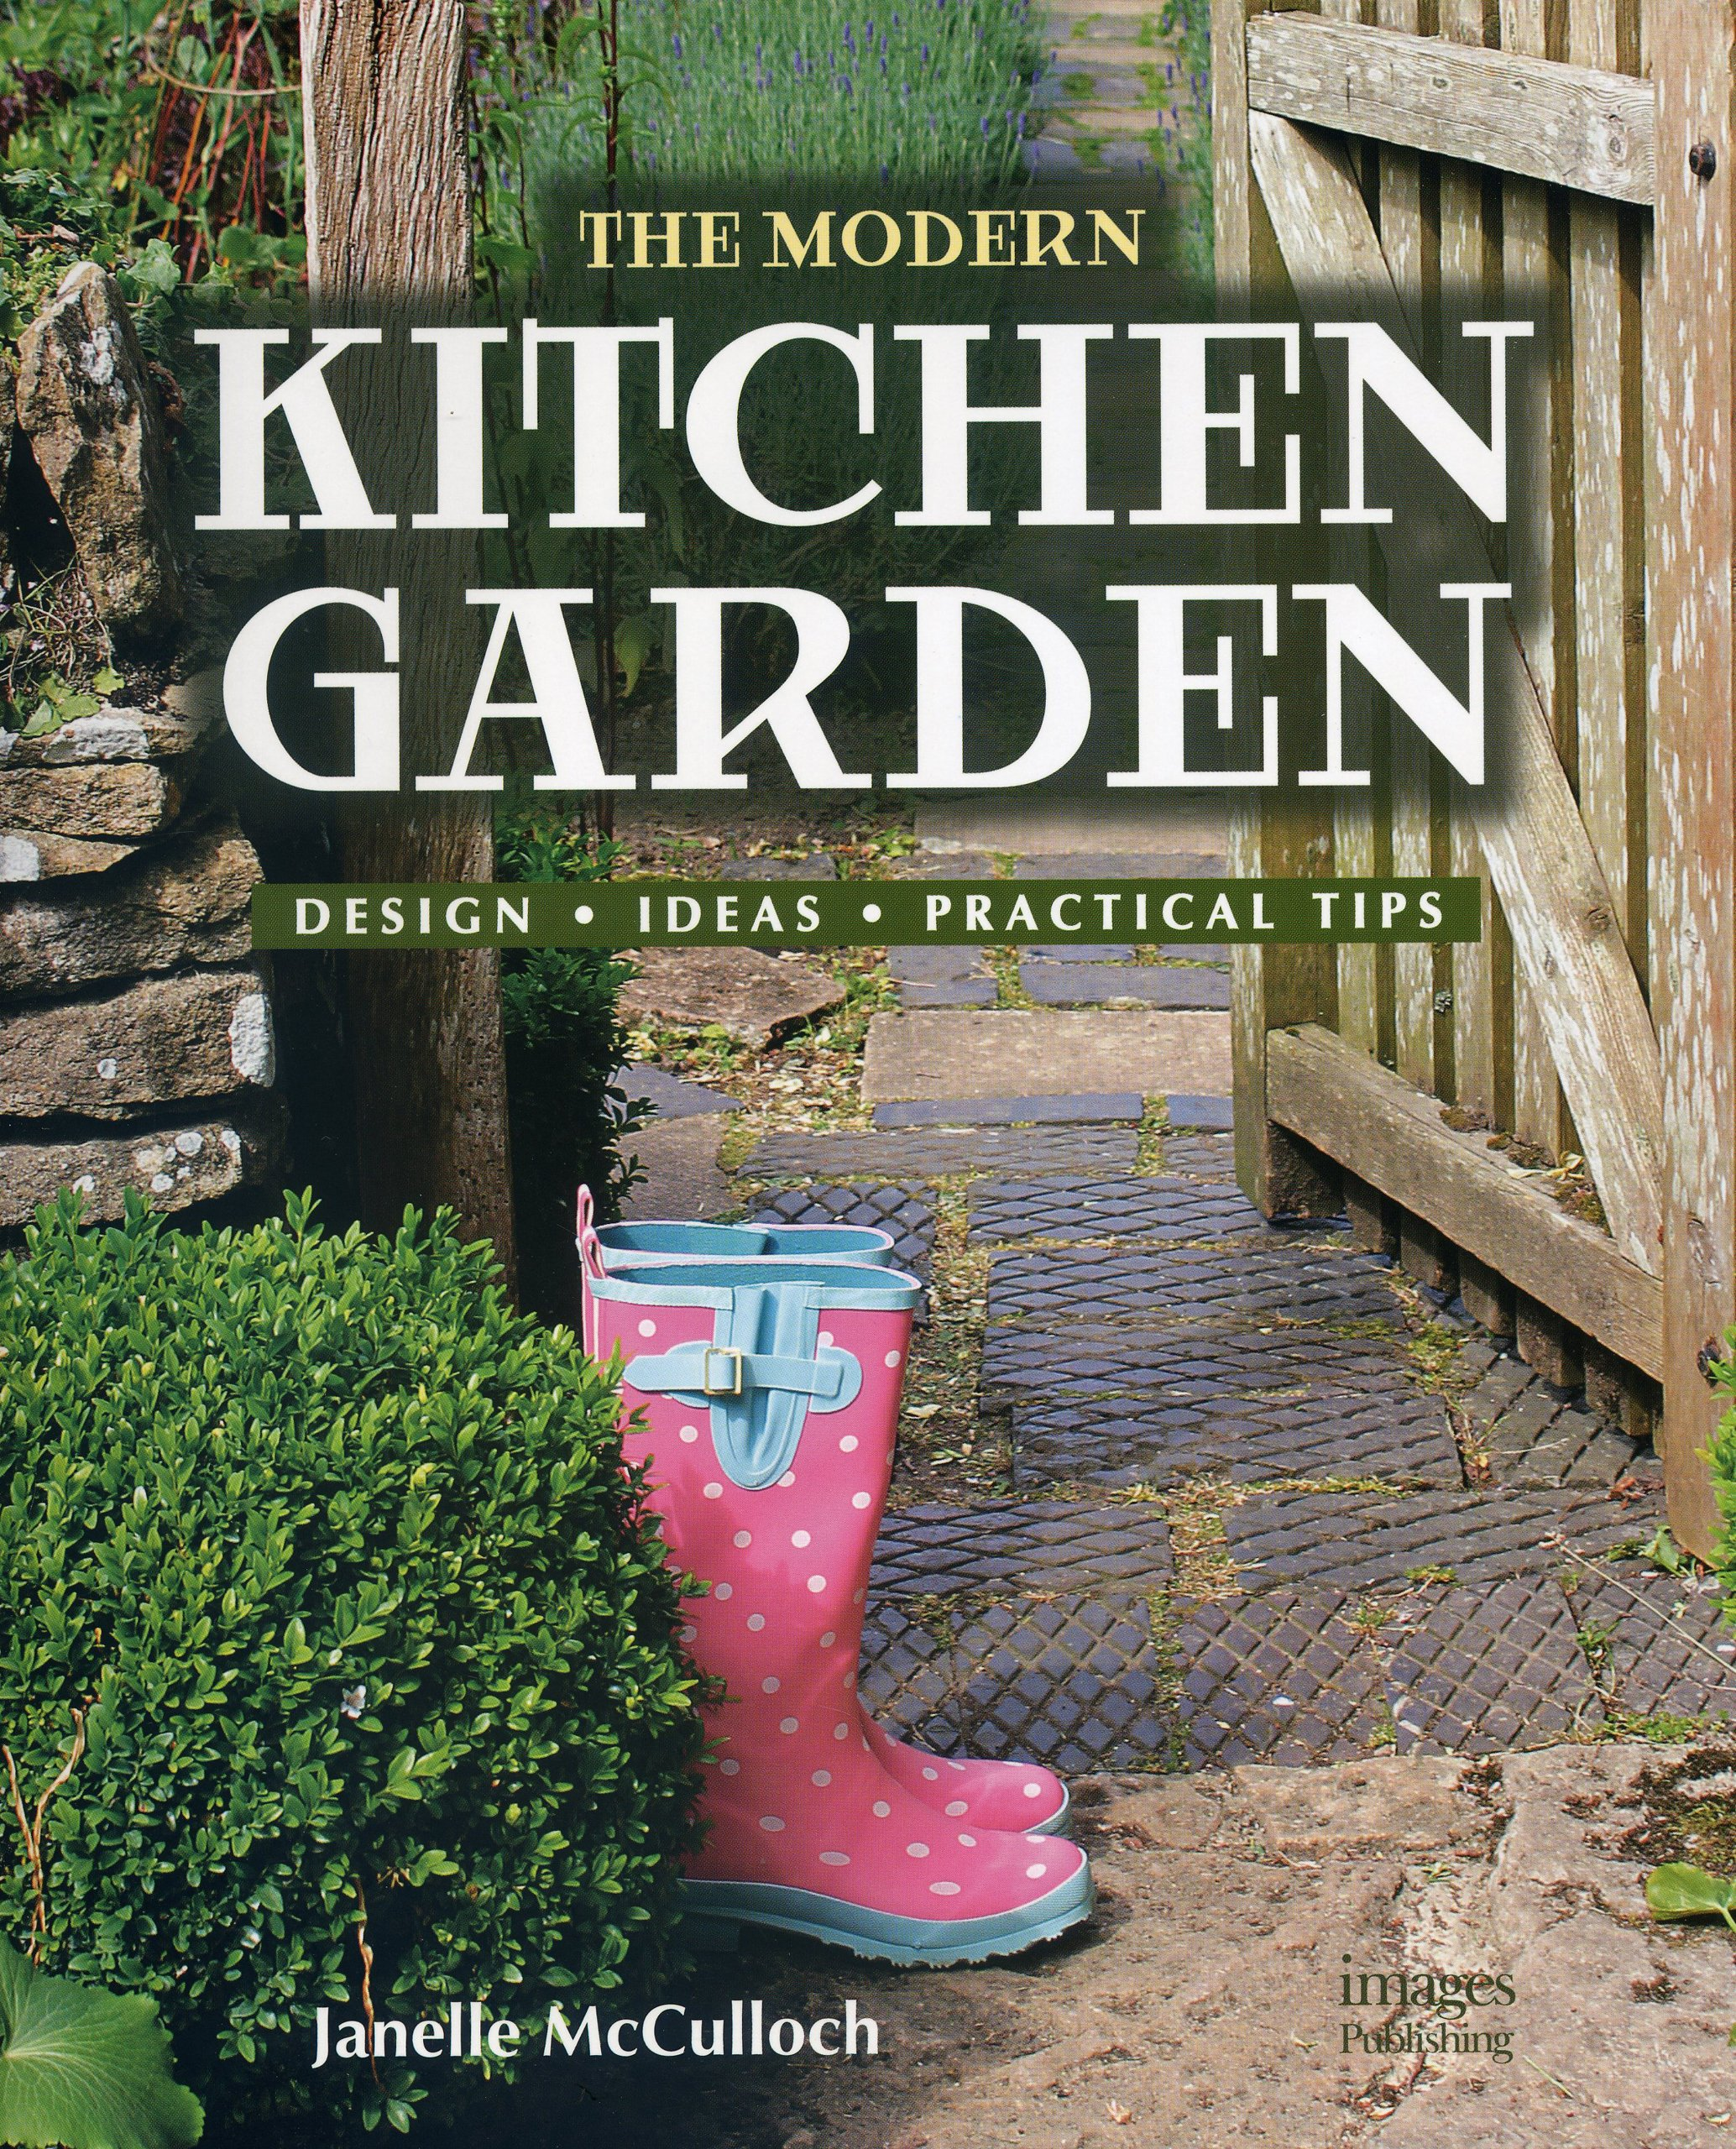 the-modern-kitchen-garden-design-ideas-practical-tips